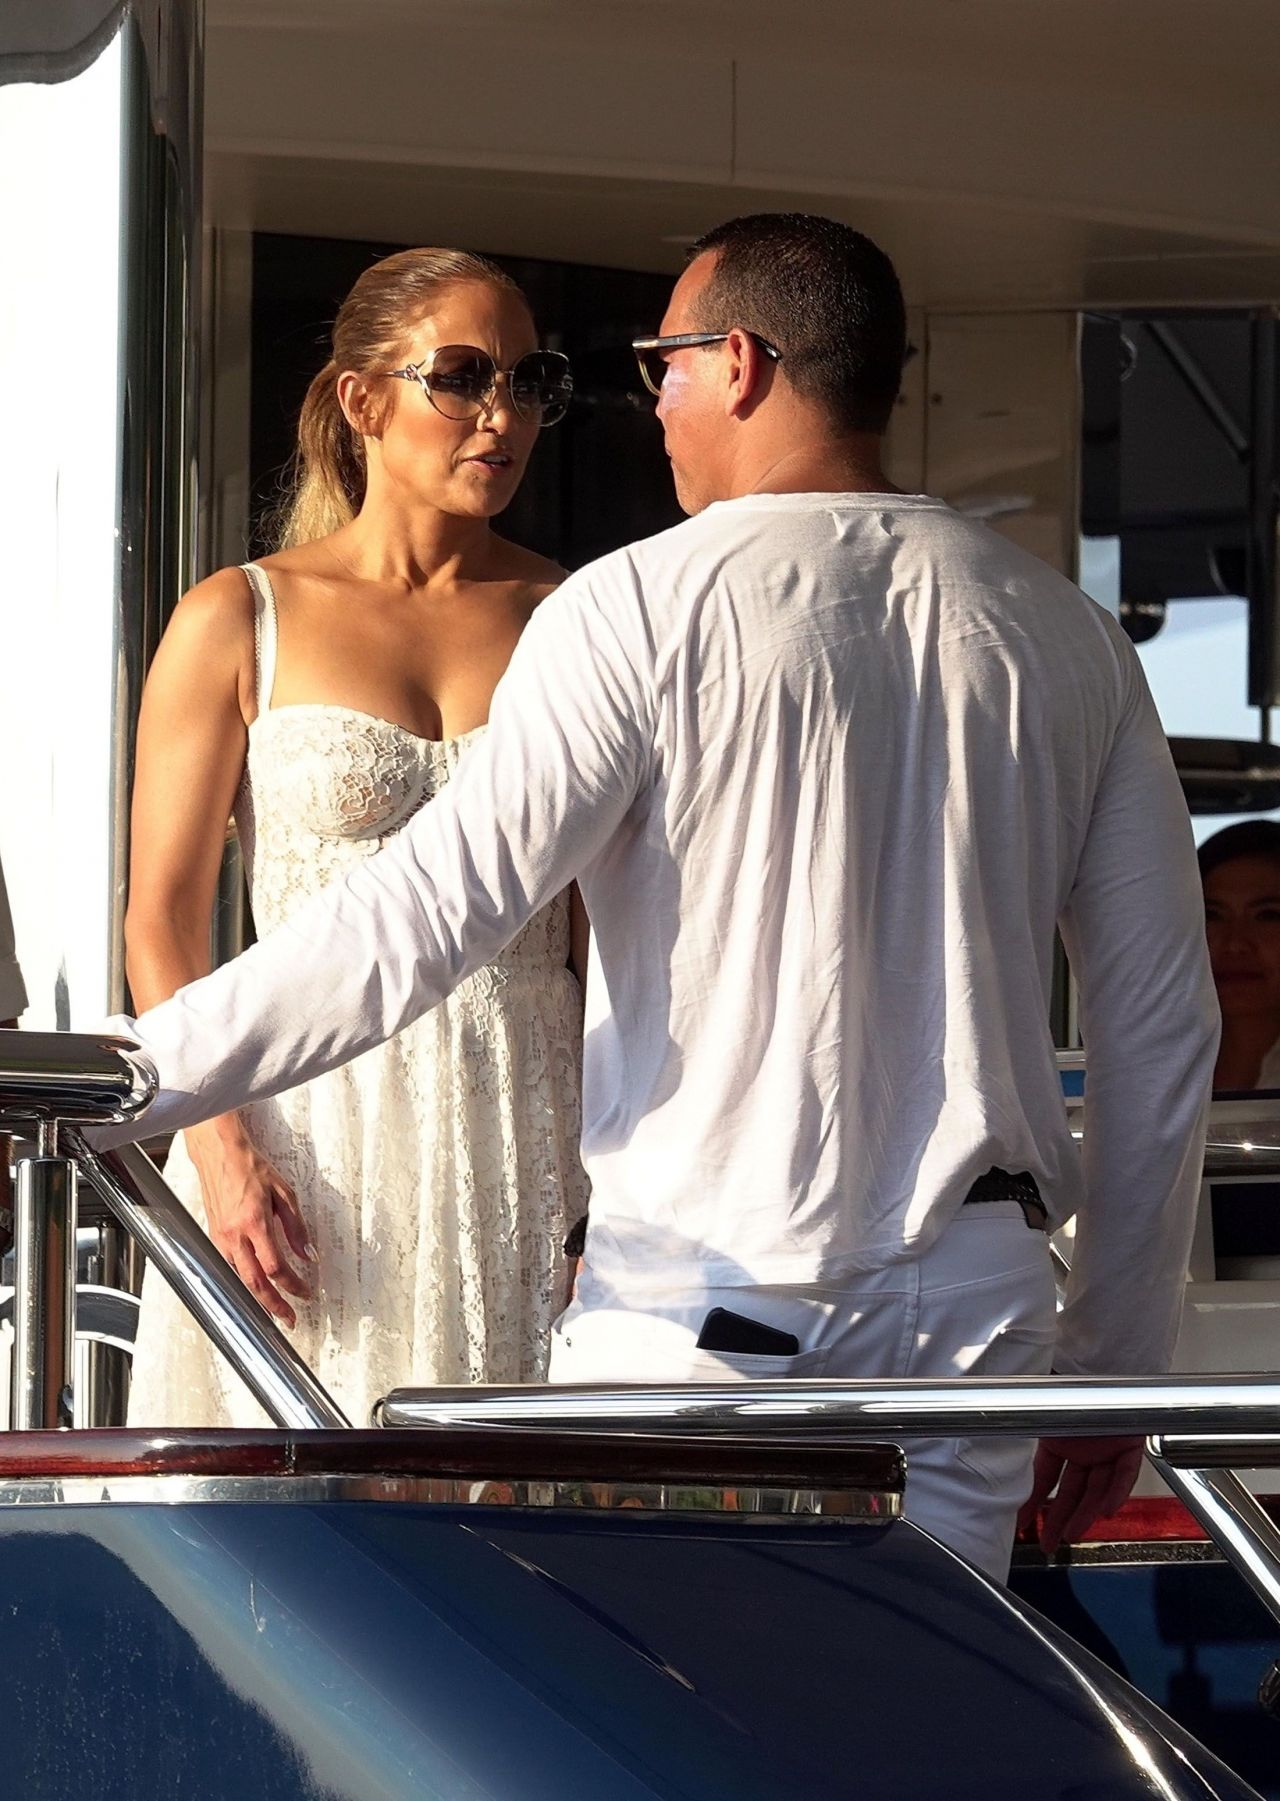 jennifer-lopez-and-alex-rodriguez-on-their-luxury-yacht-in-capri-08-07-2018-6.jpg